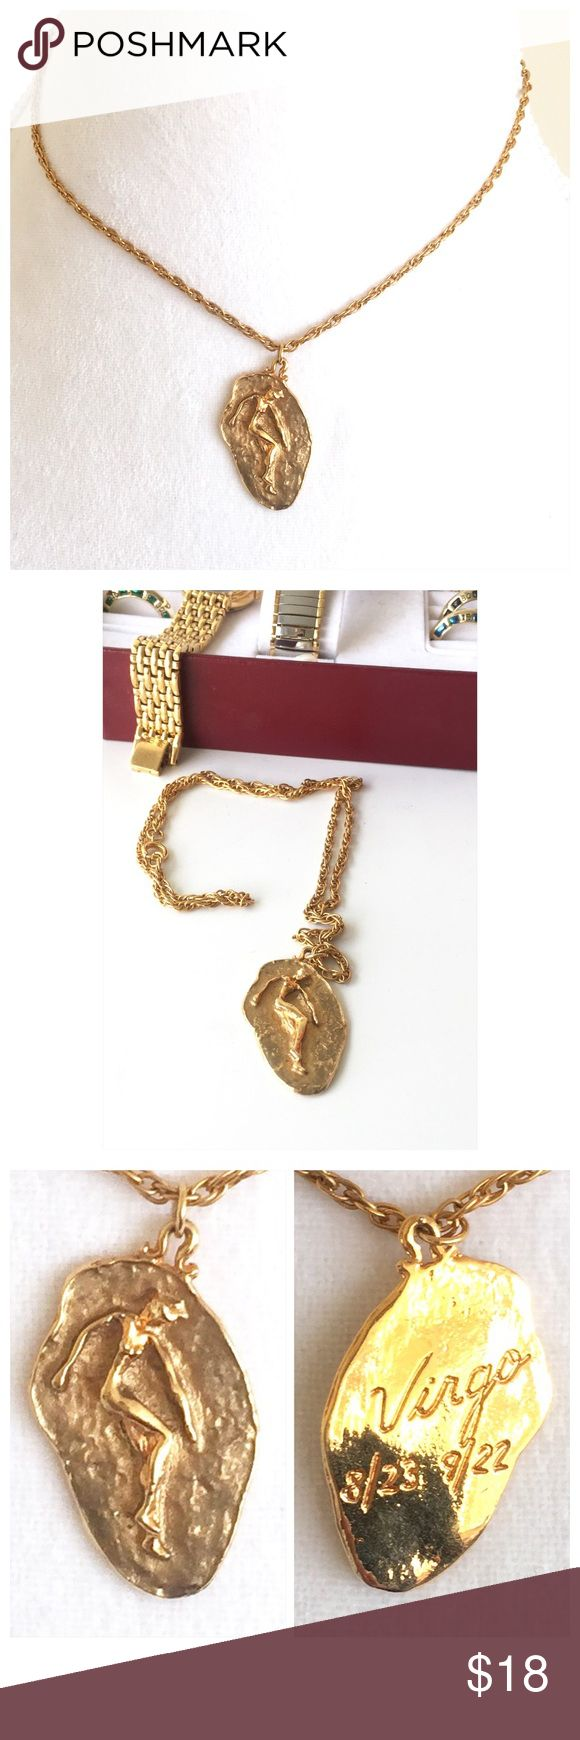 "Gold Tone Horoscope Sign VIRGO Pendant Necklace Gold Tone Horoscope Sign VIRGO Pendant Necklace. Total length of Necklace is 10.5"". Clasp closure. All my items are from a smoke free environment. Prices are negotiable. Thank you for stopping by!! Boutique Jewelry Necklaces"